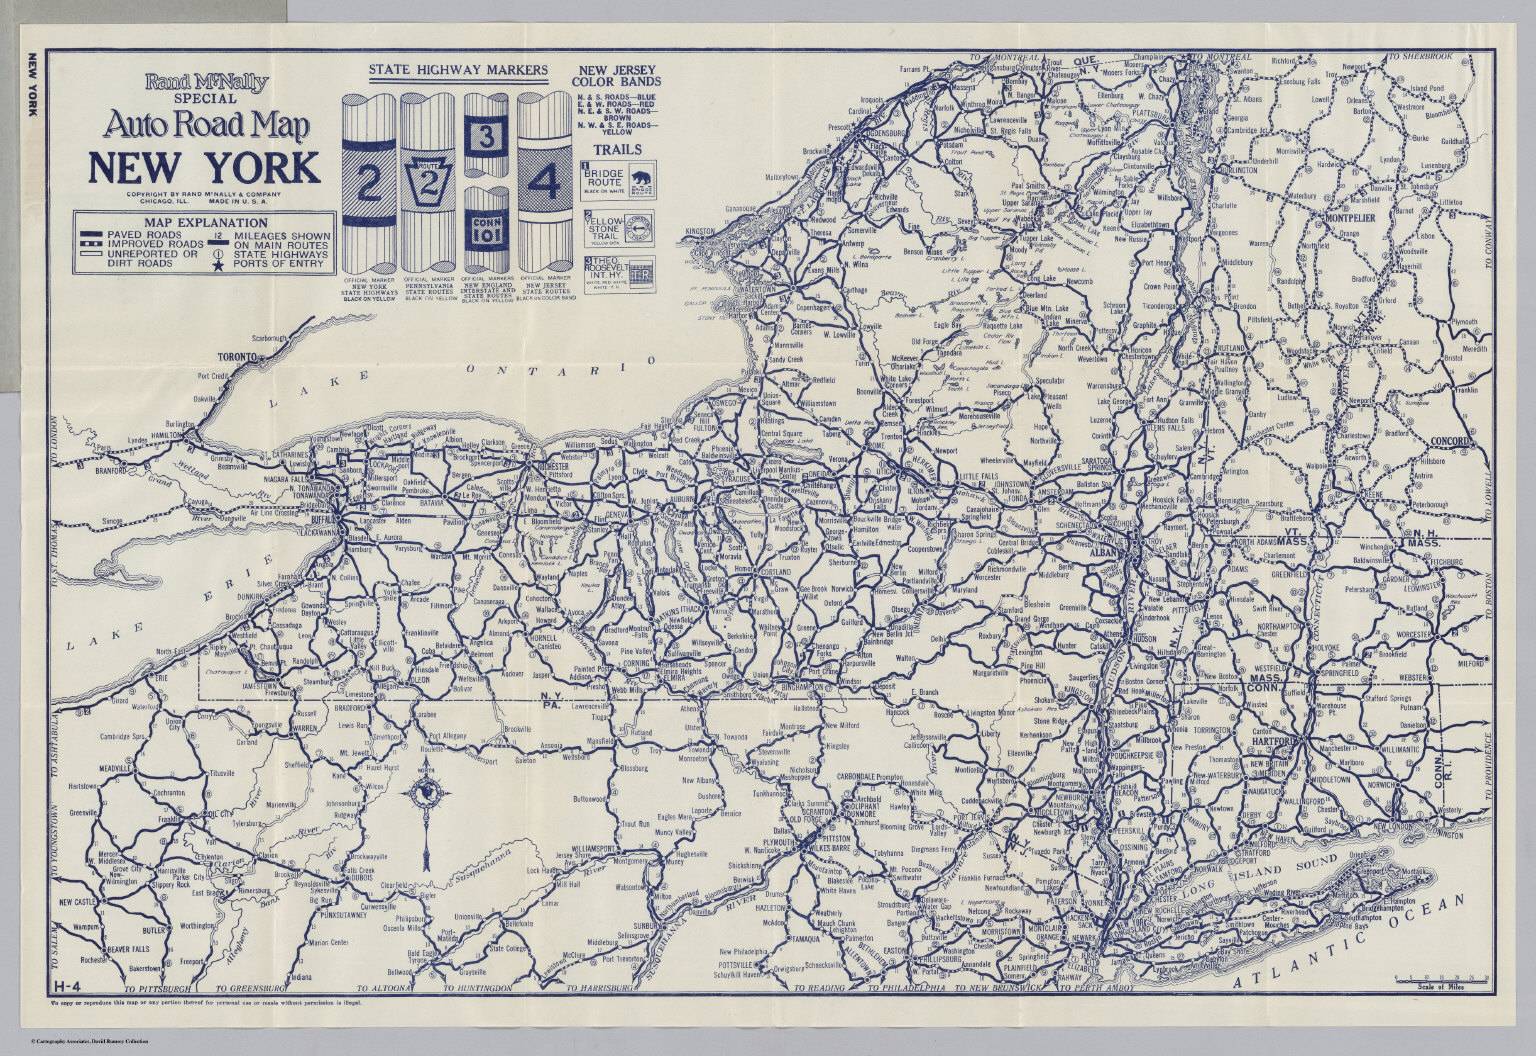 Auto Road Map New York David Rumsey Historical Map Collection - Road map new york state